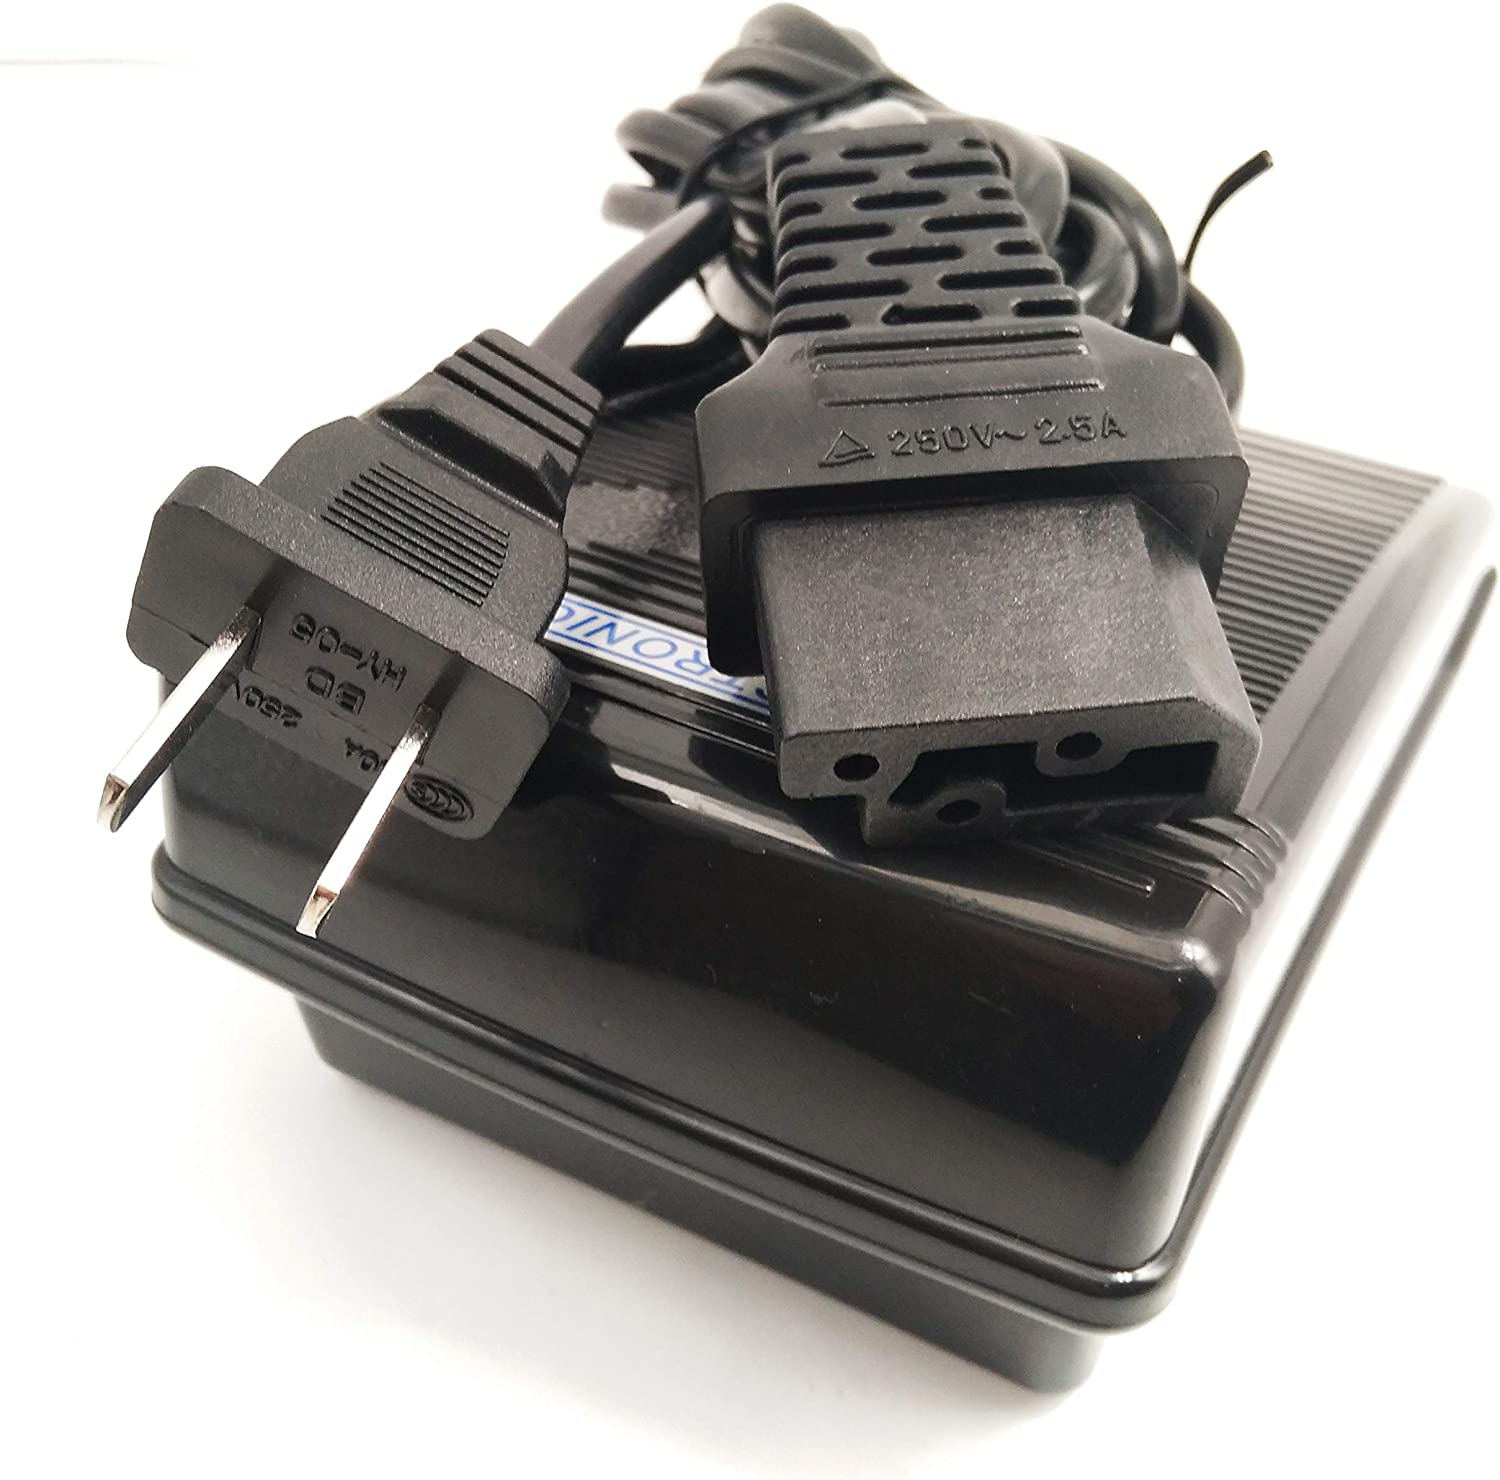 LNKA Foot Control Pedal W//Cord 001026109 Compatible with Singer 14U23 3507 3514 3515 Riccar 410 420 430 440